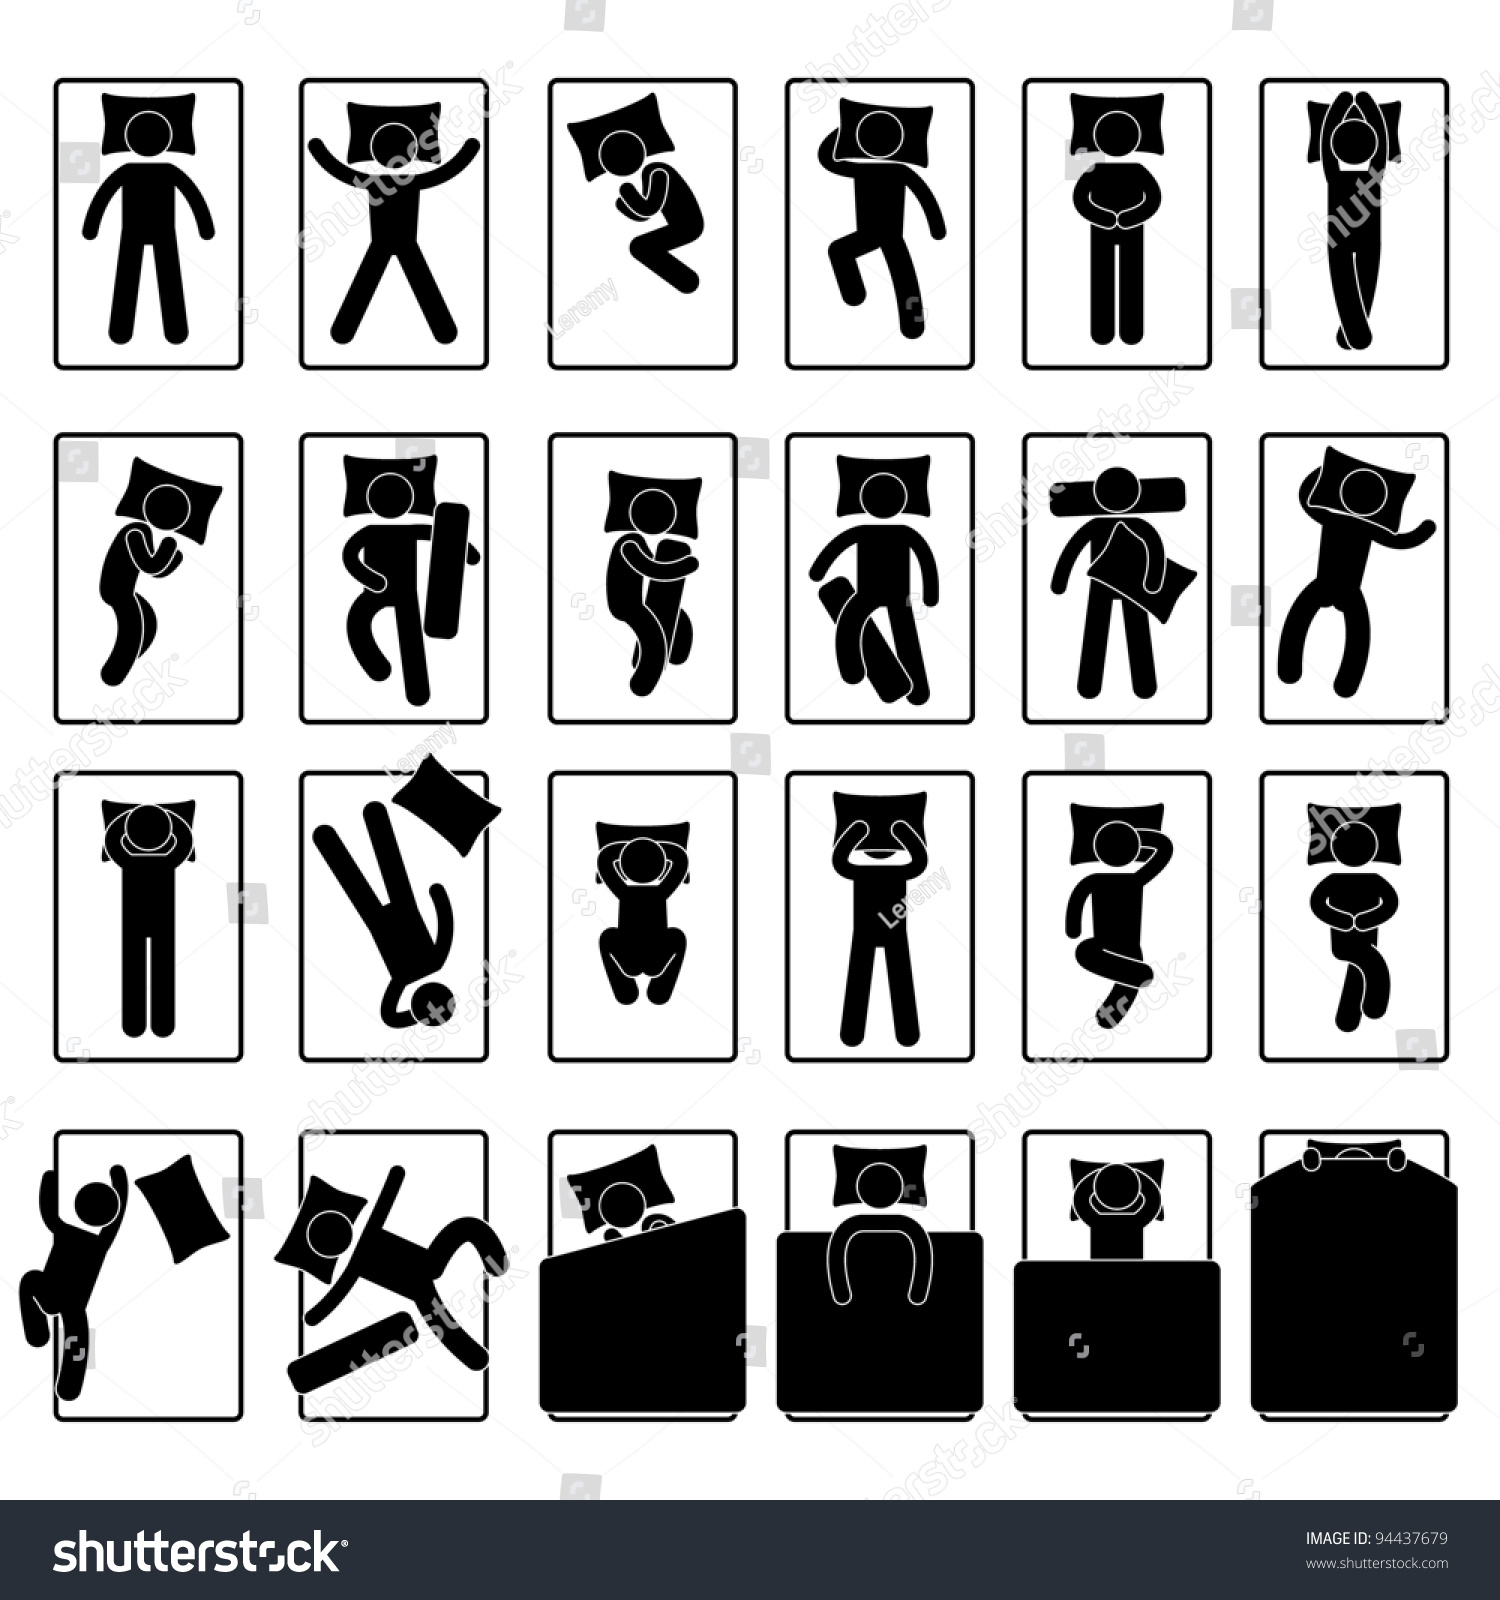 Damn Fresh Pics: What Your Favorite Sleeping Pose Can Tell About You